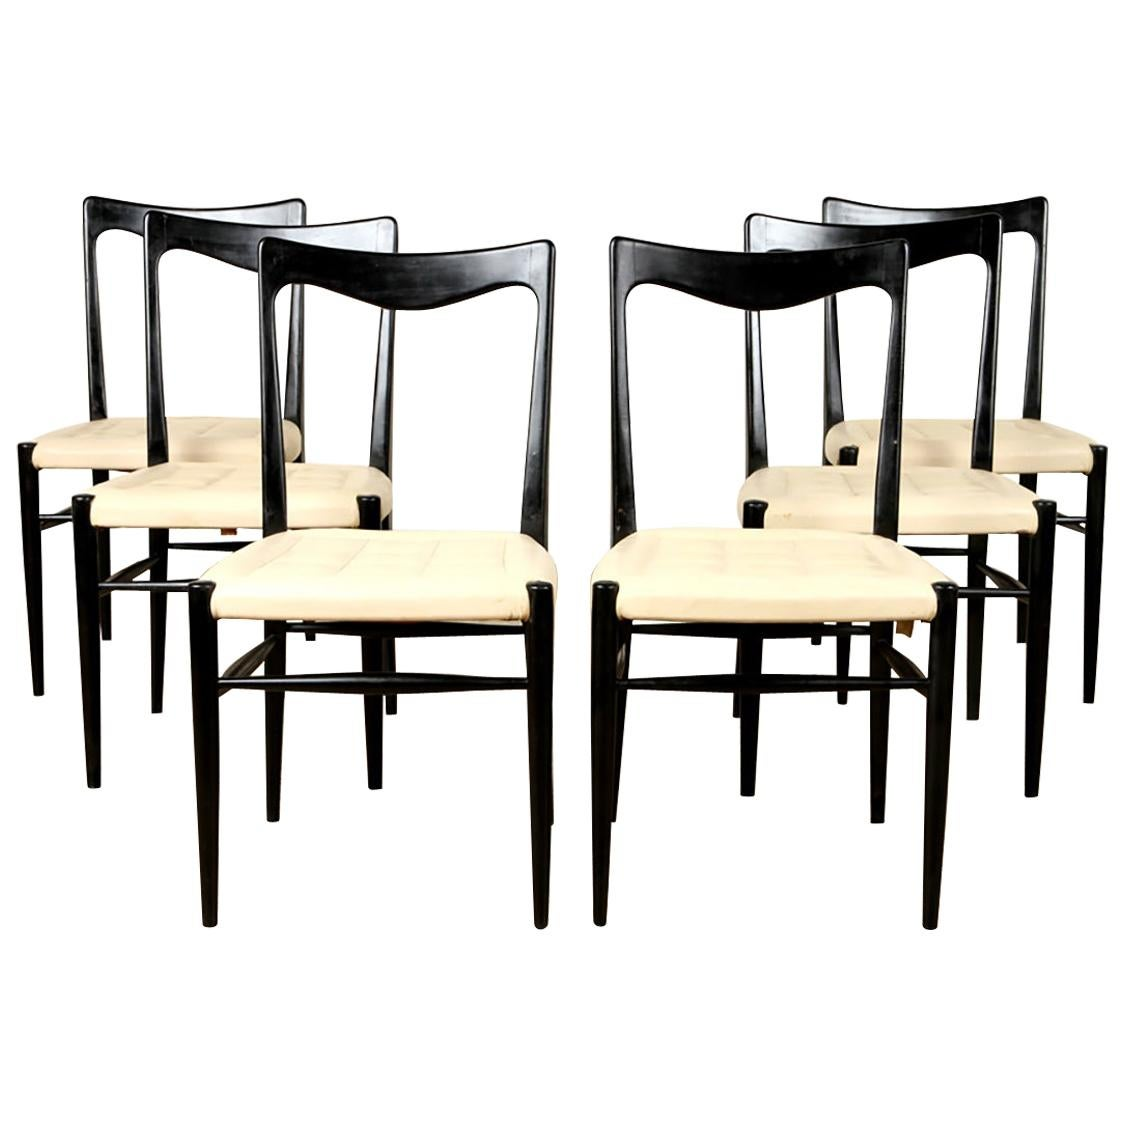 Chic Set of 6 Modern Ebonized Dining Chairs Having an Ivory Stitched Seat